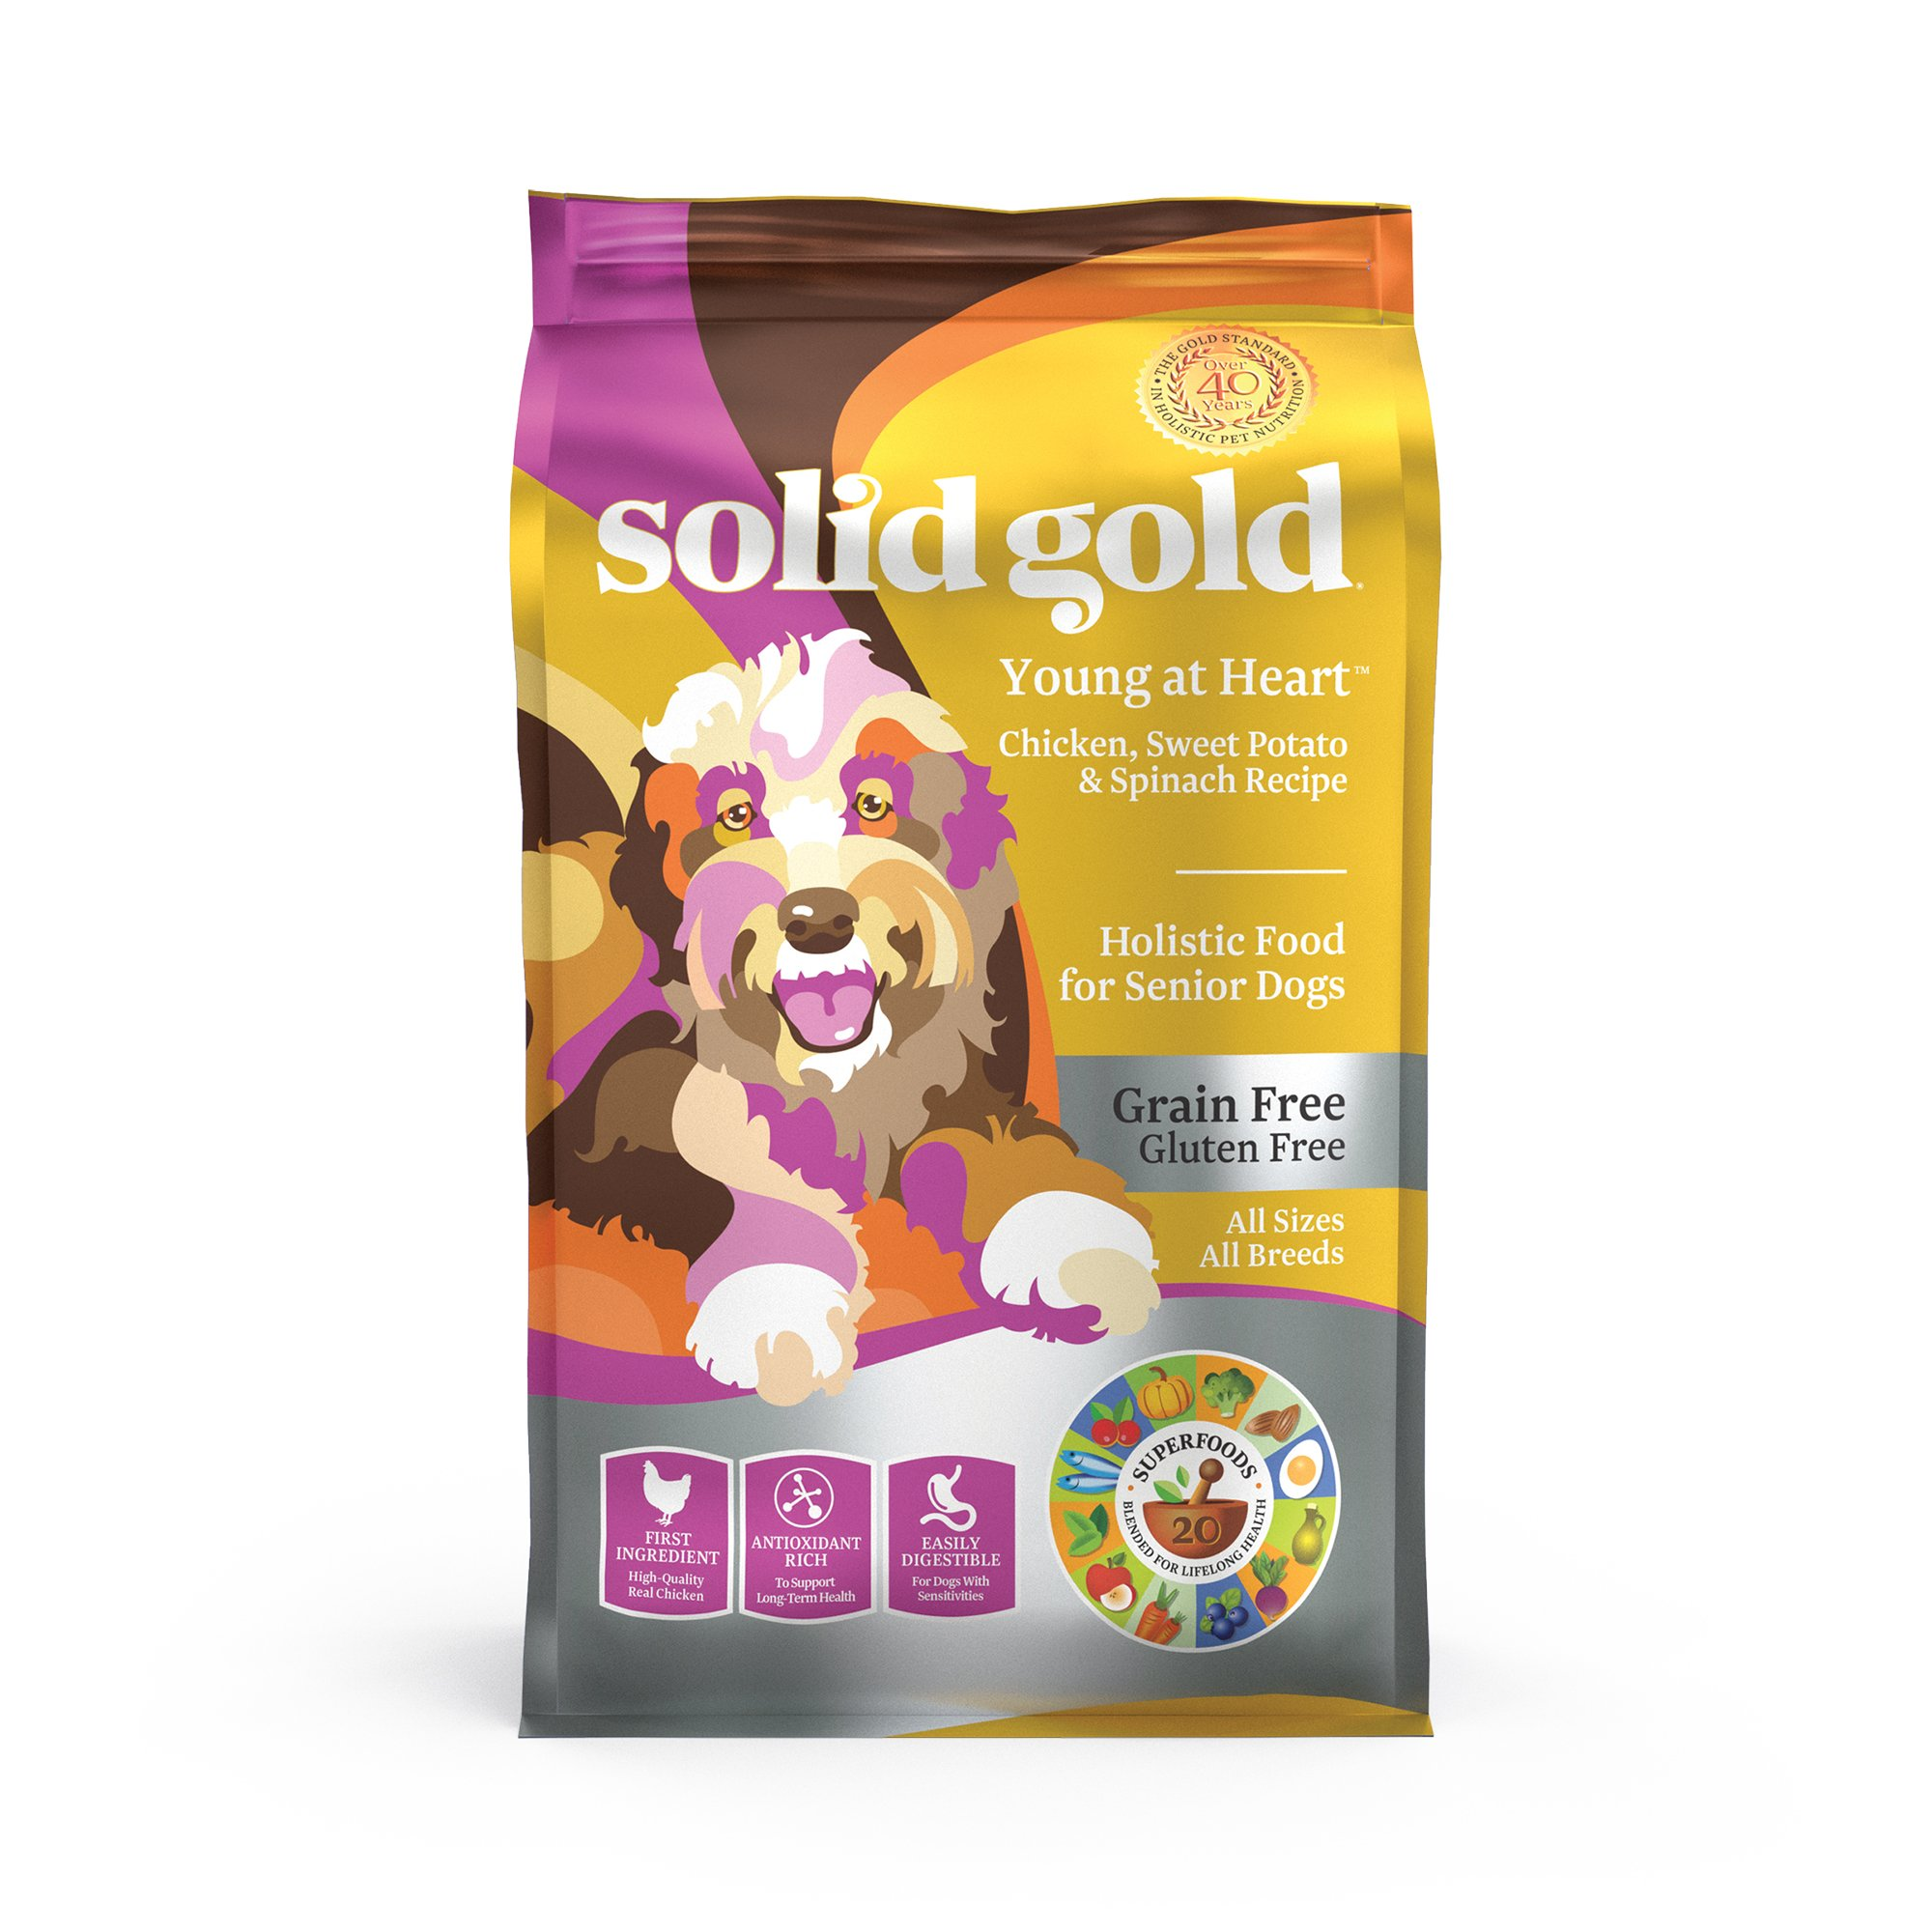 Solid Gold Young At Heart Chicken, Sweet Potato & Spinach Recipe Grain Free Dry Senior Dog Food, 4 lbs.